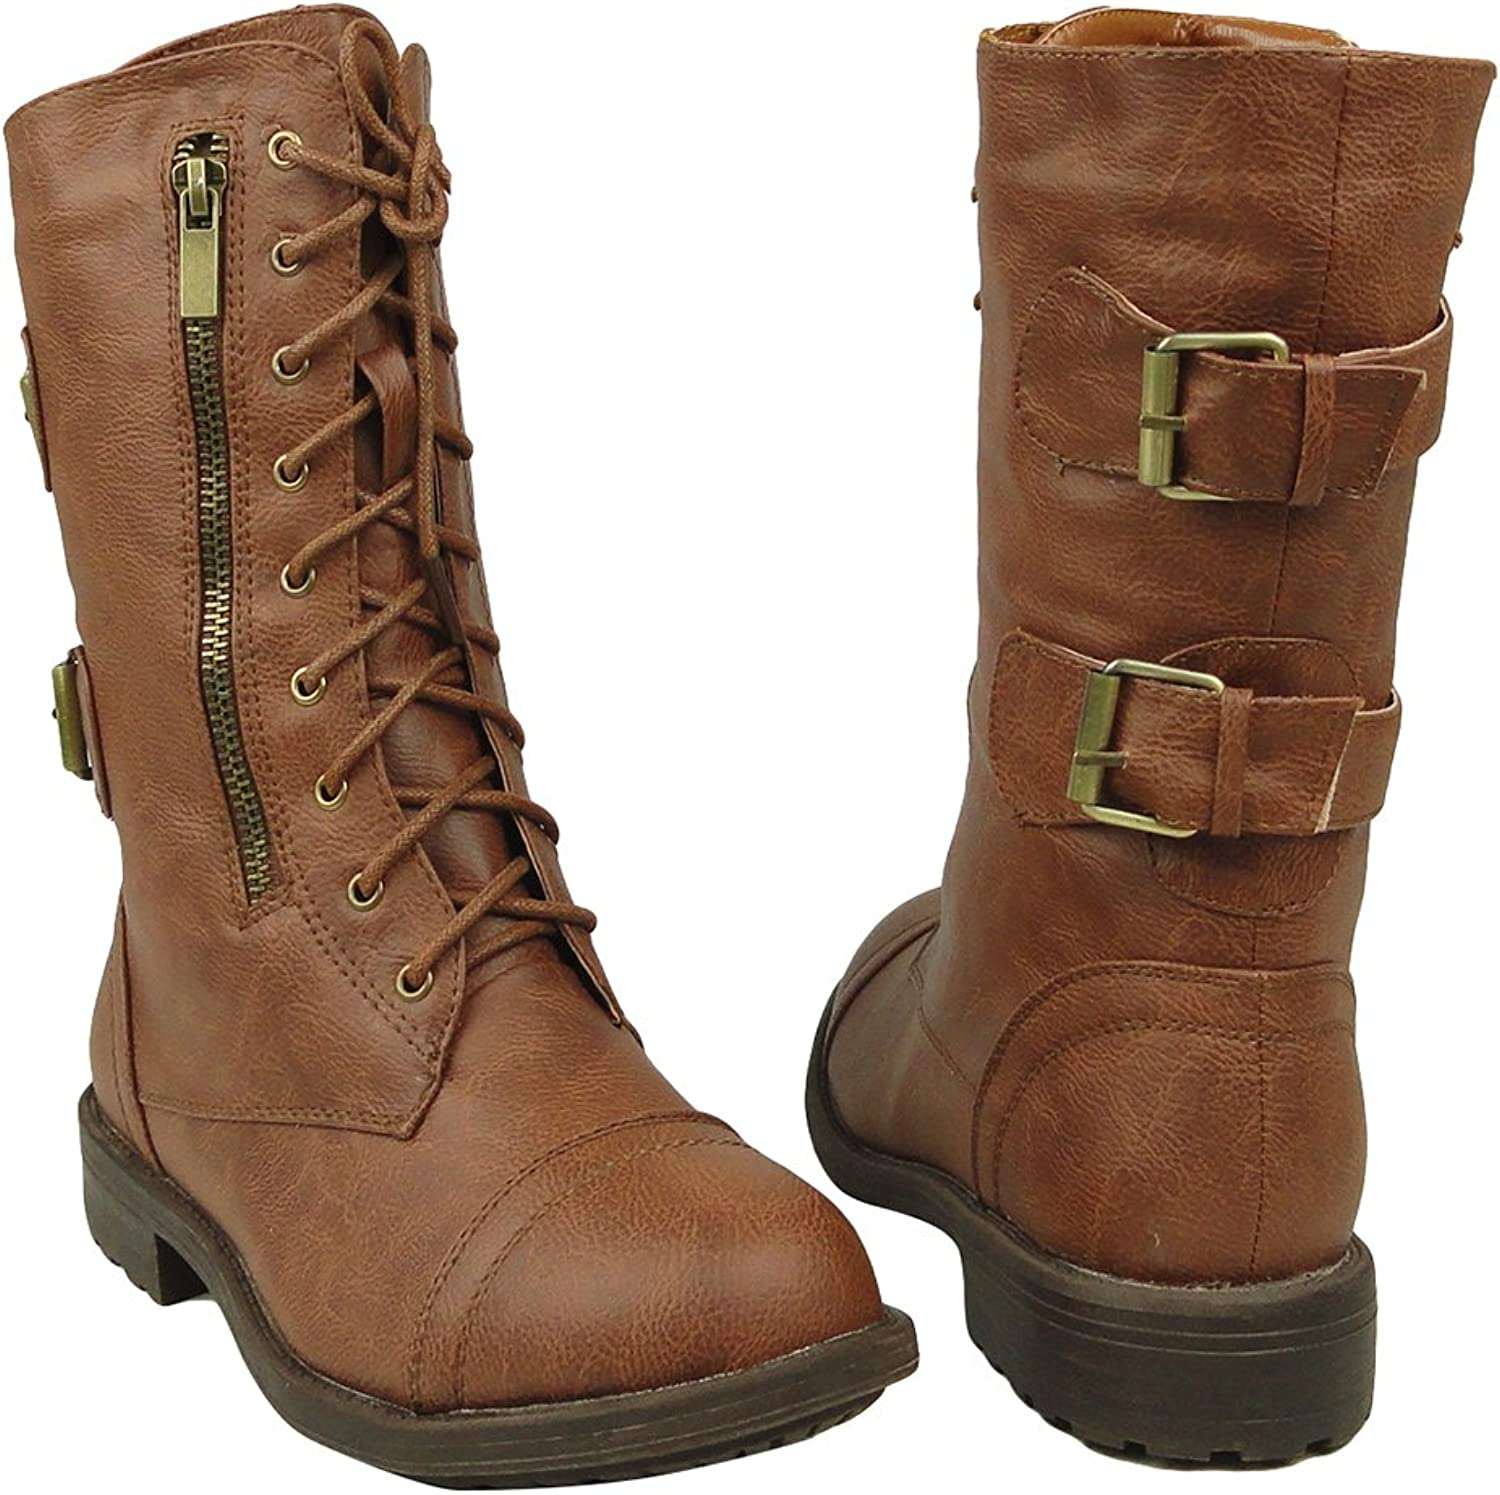 TG By KSC Women's Mid Calf Casual Comfort Rounded Toe Combat Boots US Sizes 5.5-10 Tan